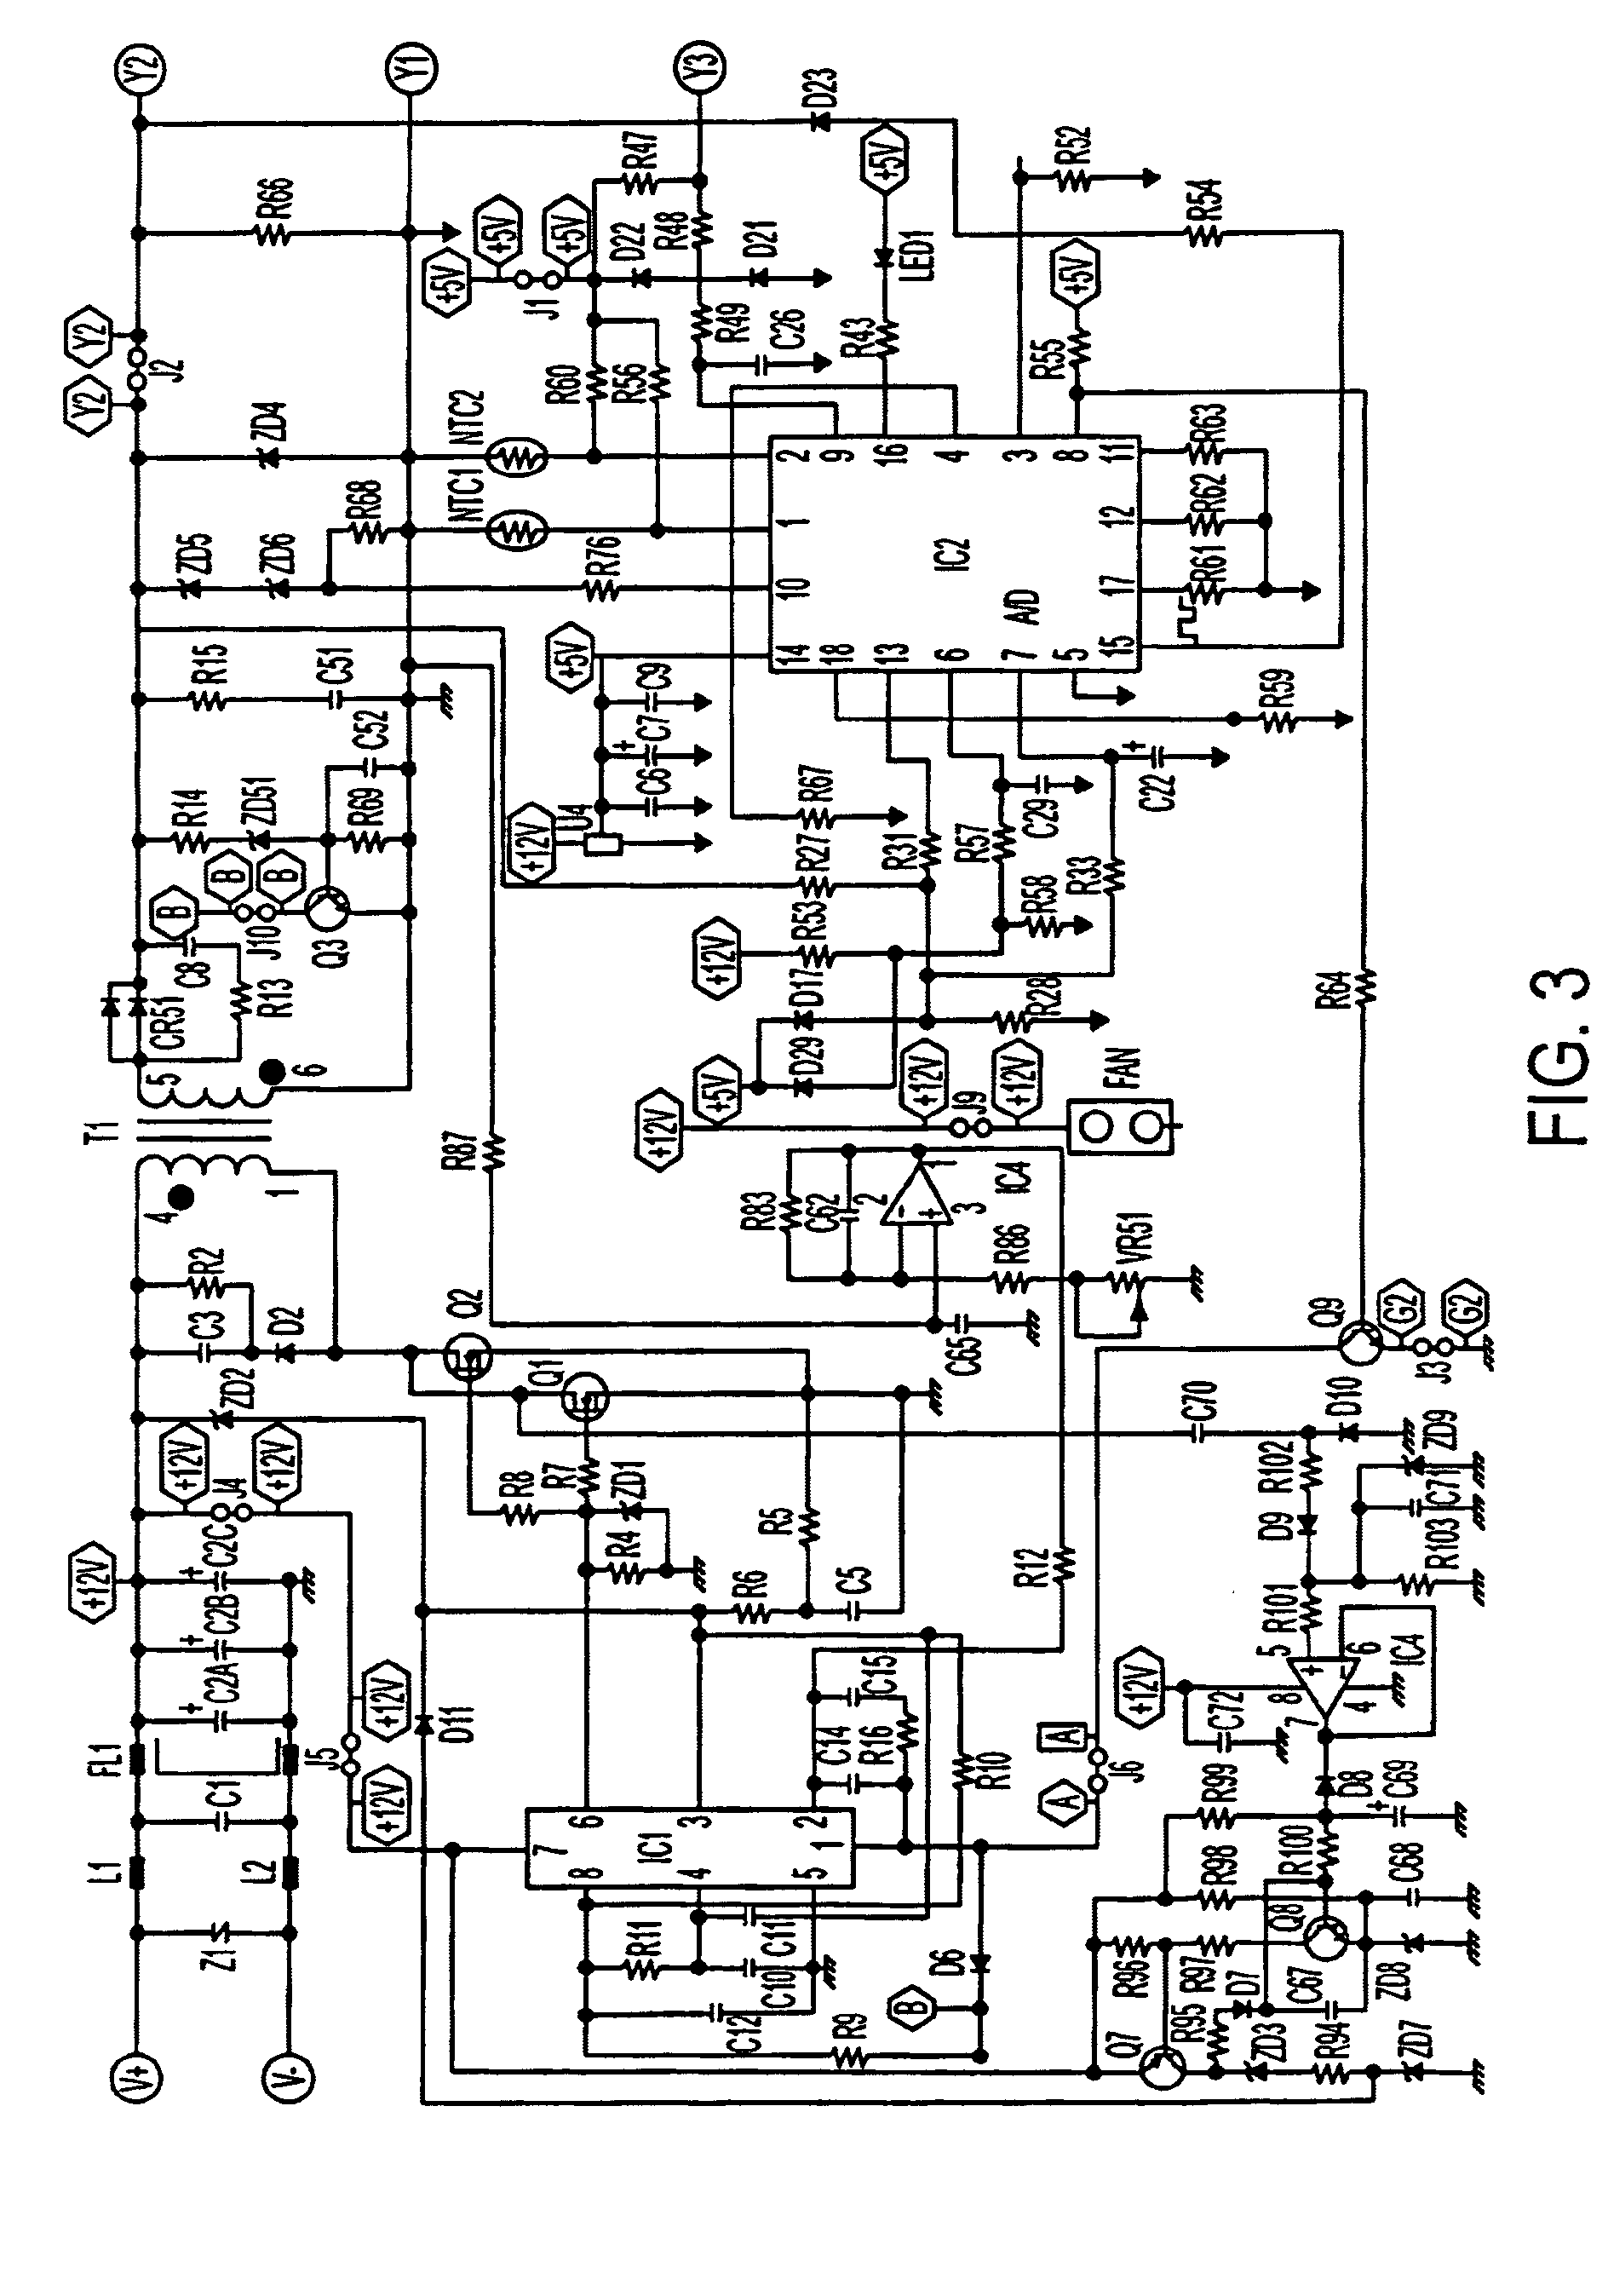 Makita Battery Charger Circuit Diagram Wiring Diagrams Nimh Also Schumacher Patent Ep1523082a1 With Presence 24v